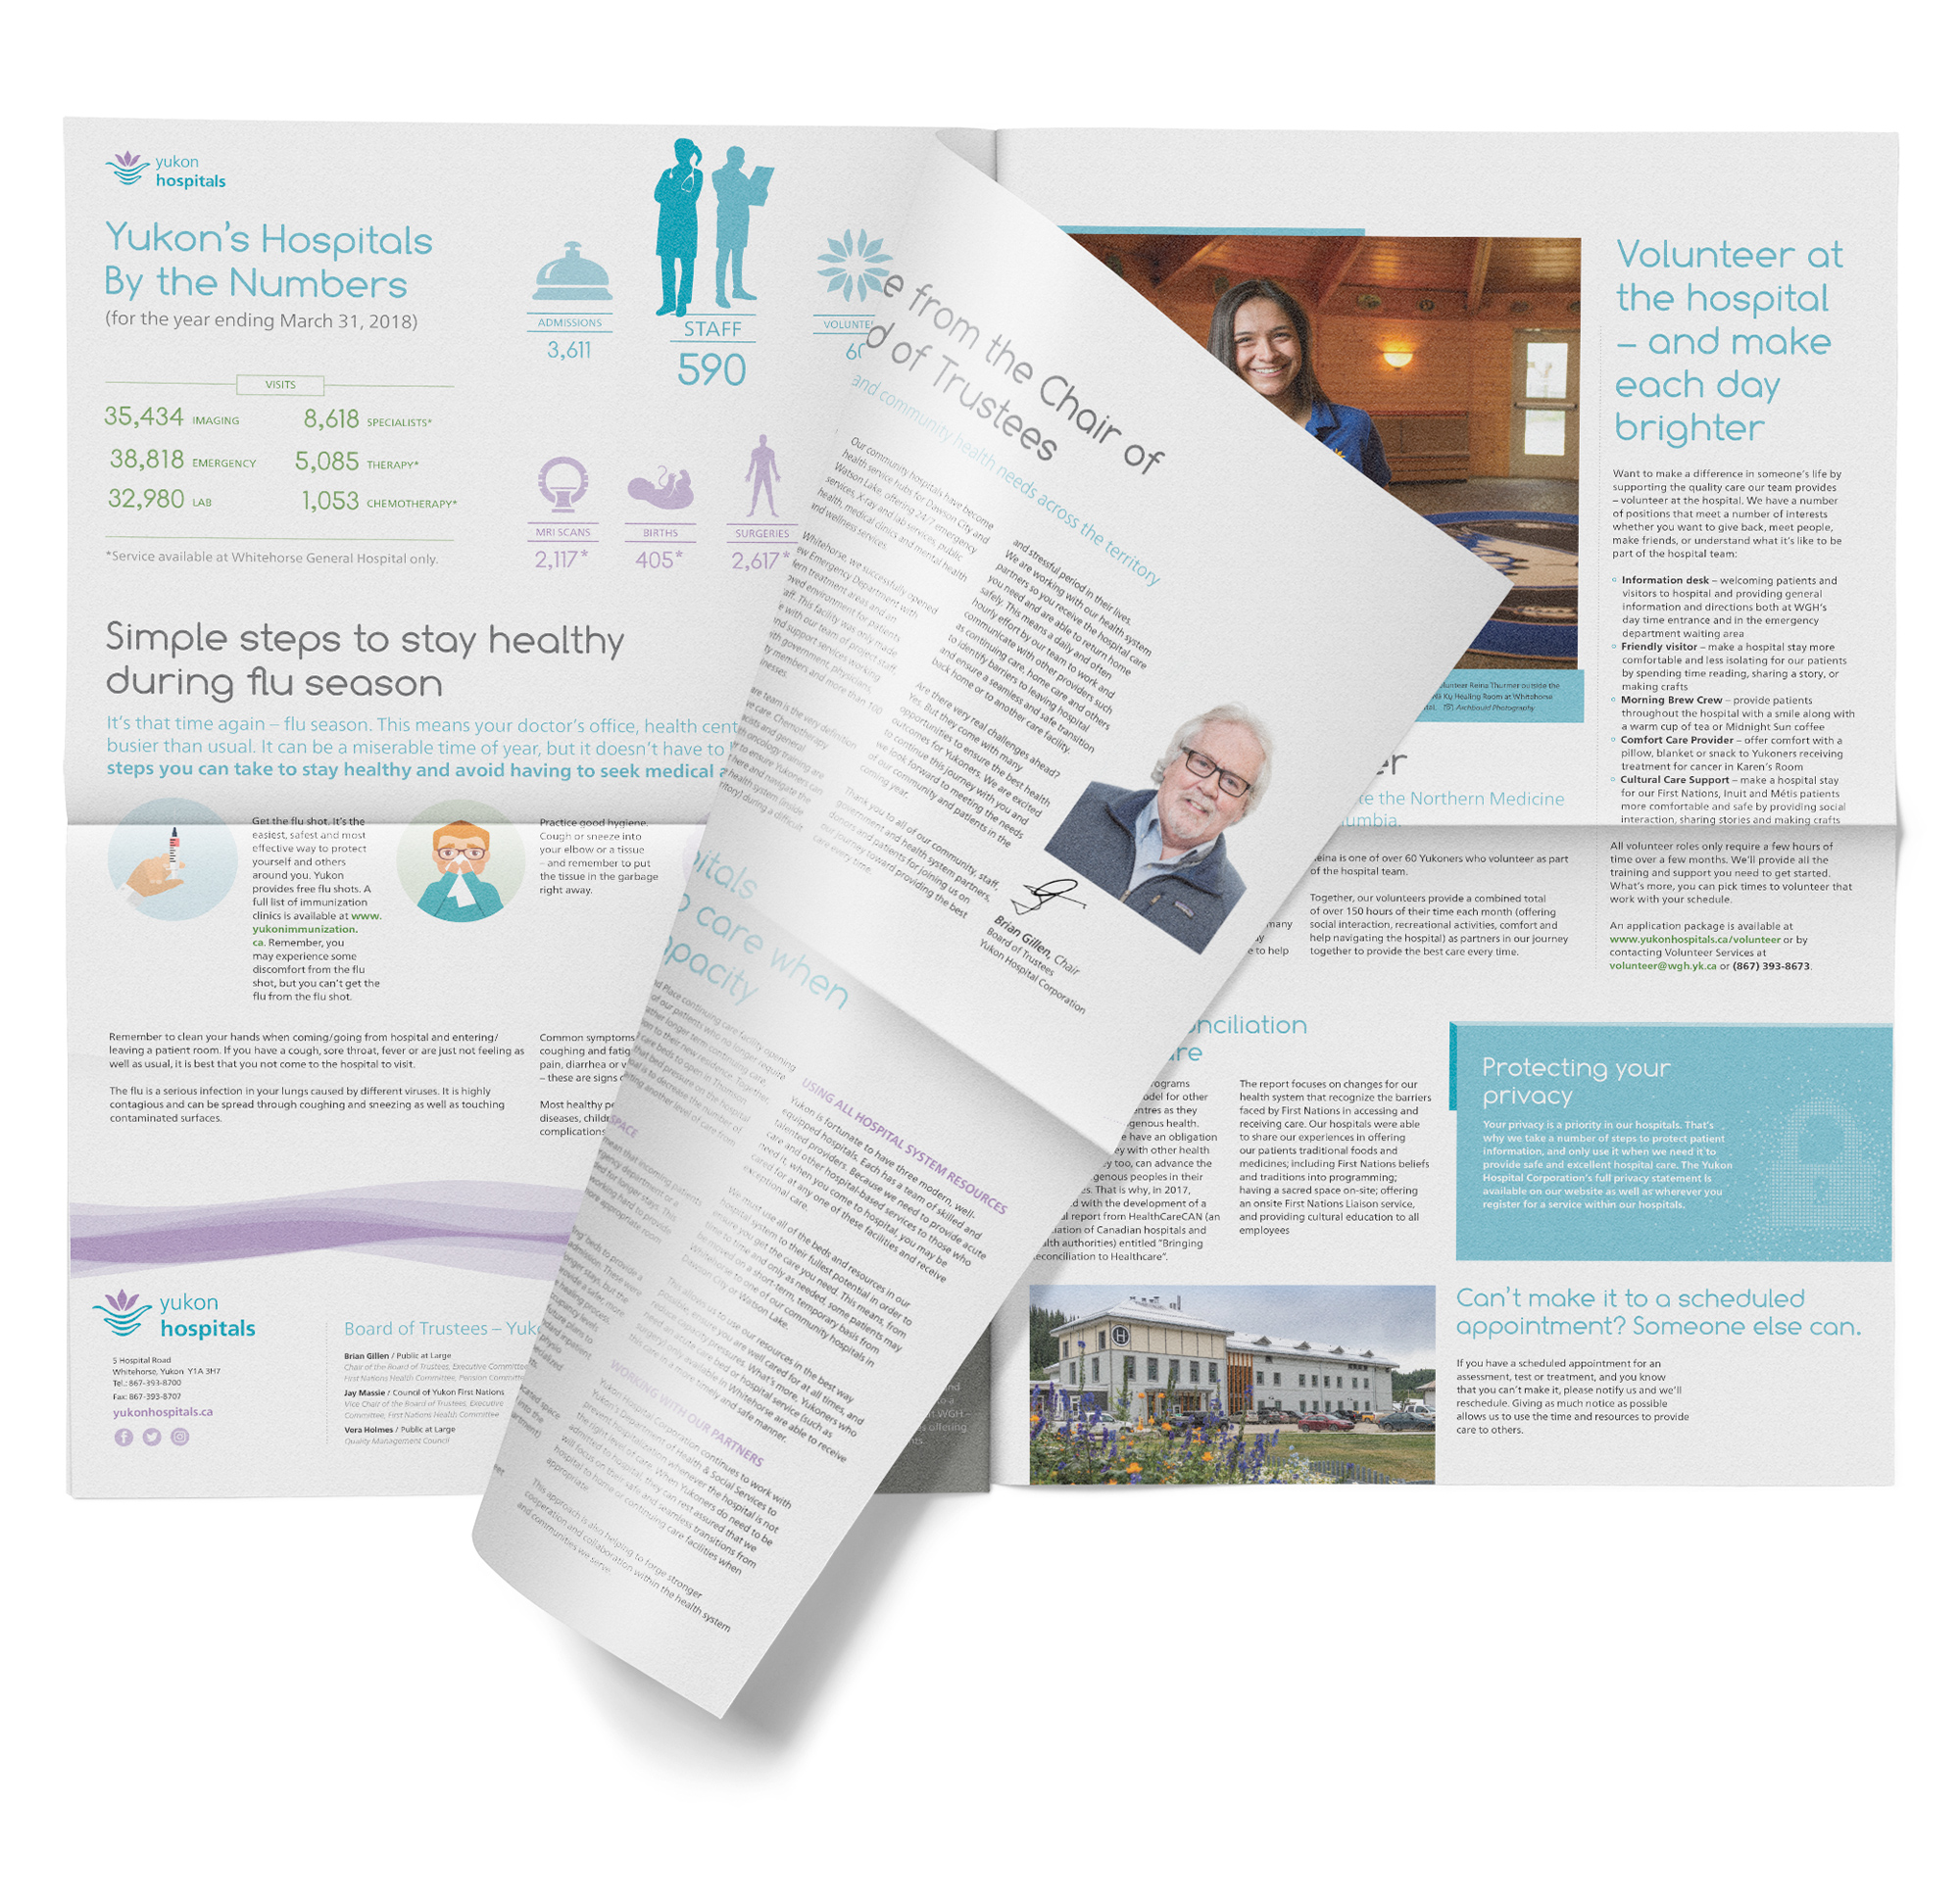 Print sample of newsletter design showing am inside spread for the Yukon Hospitals.